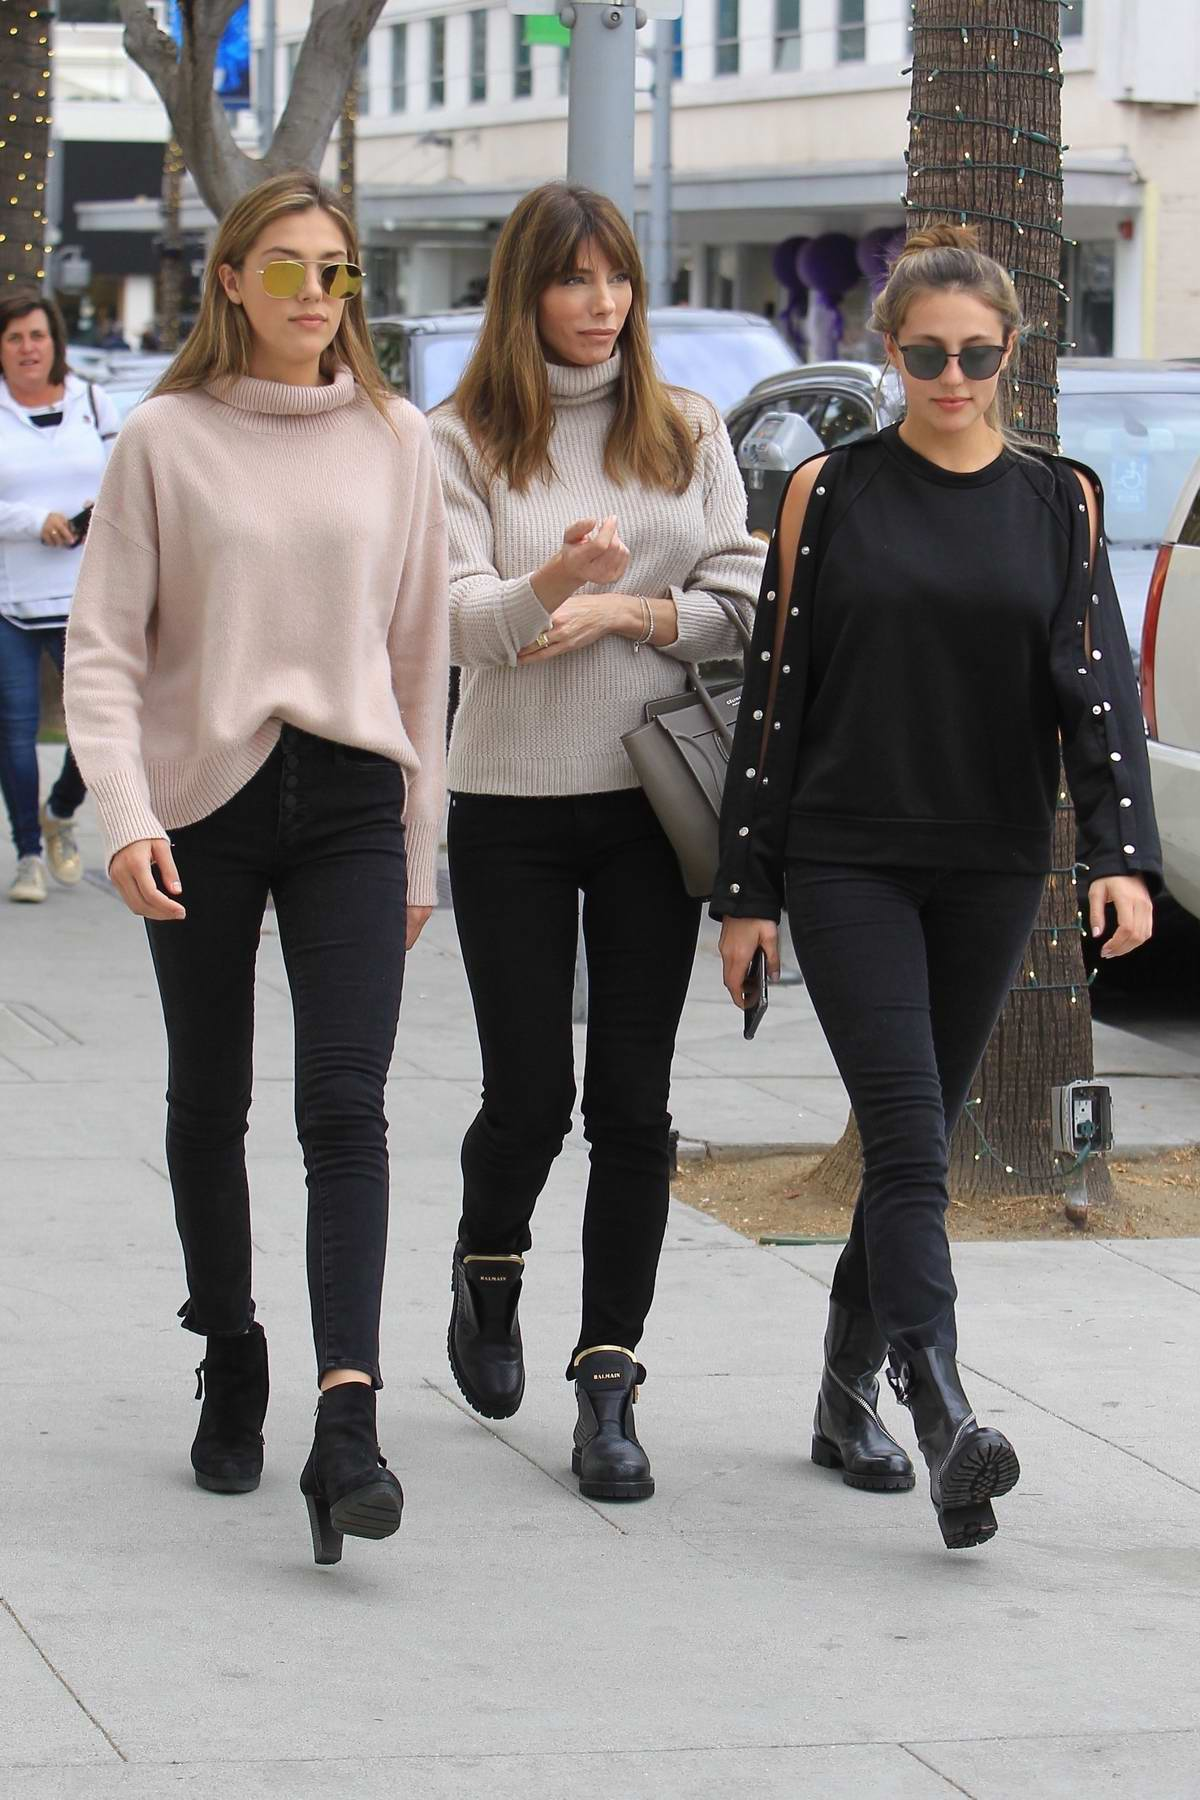 Sistine Stallone spotted while shopping with mother Jennifer Flavin and sister Sophia Stallone in Beverly Hills, Los Angeles